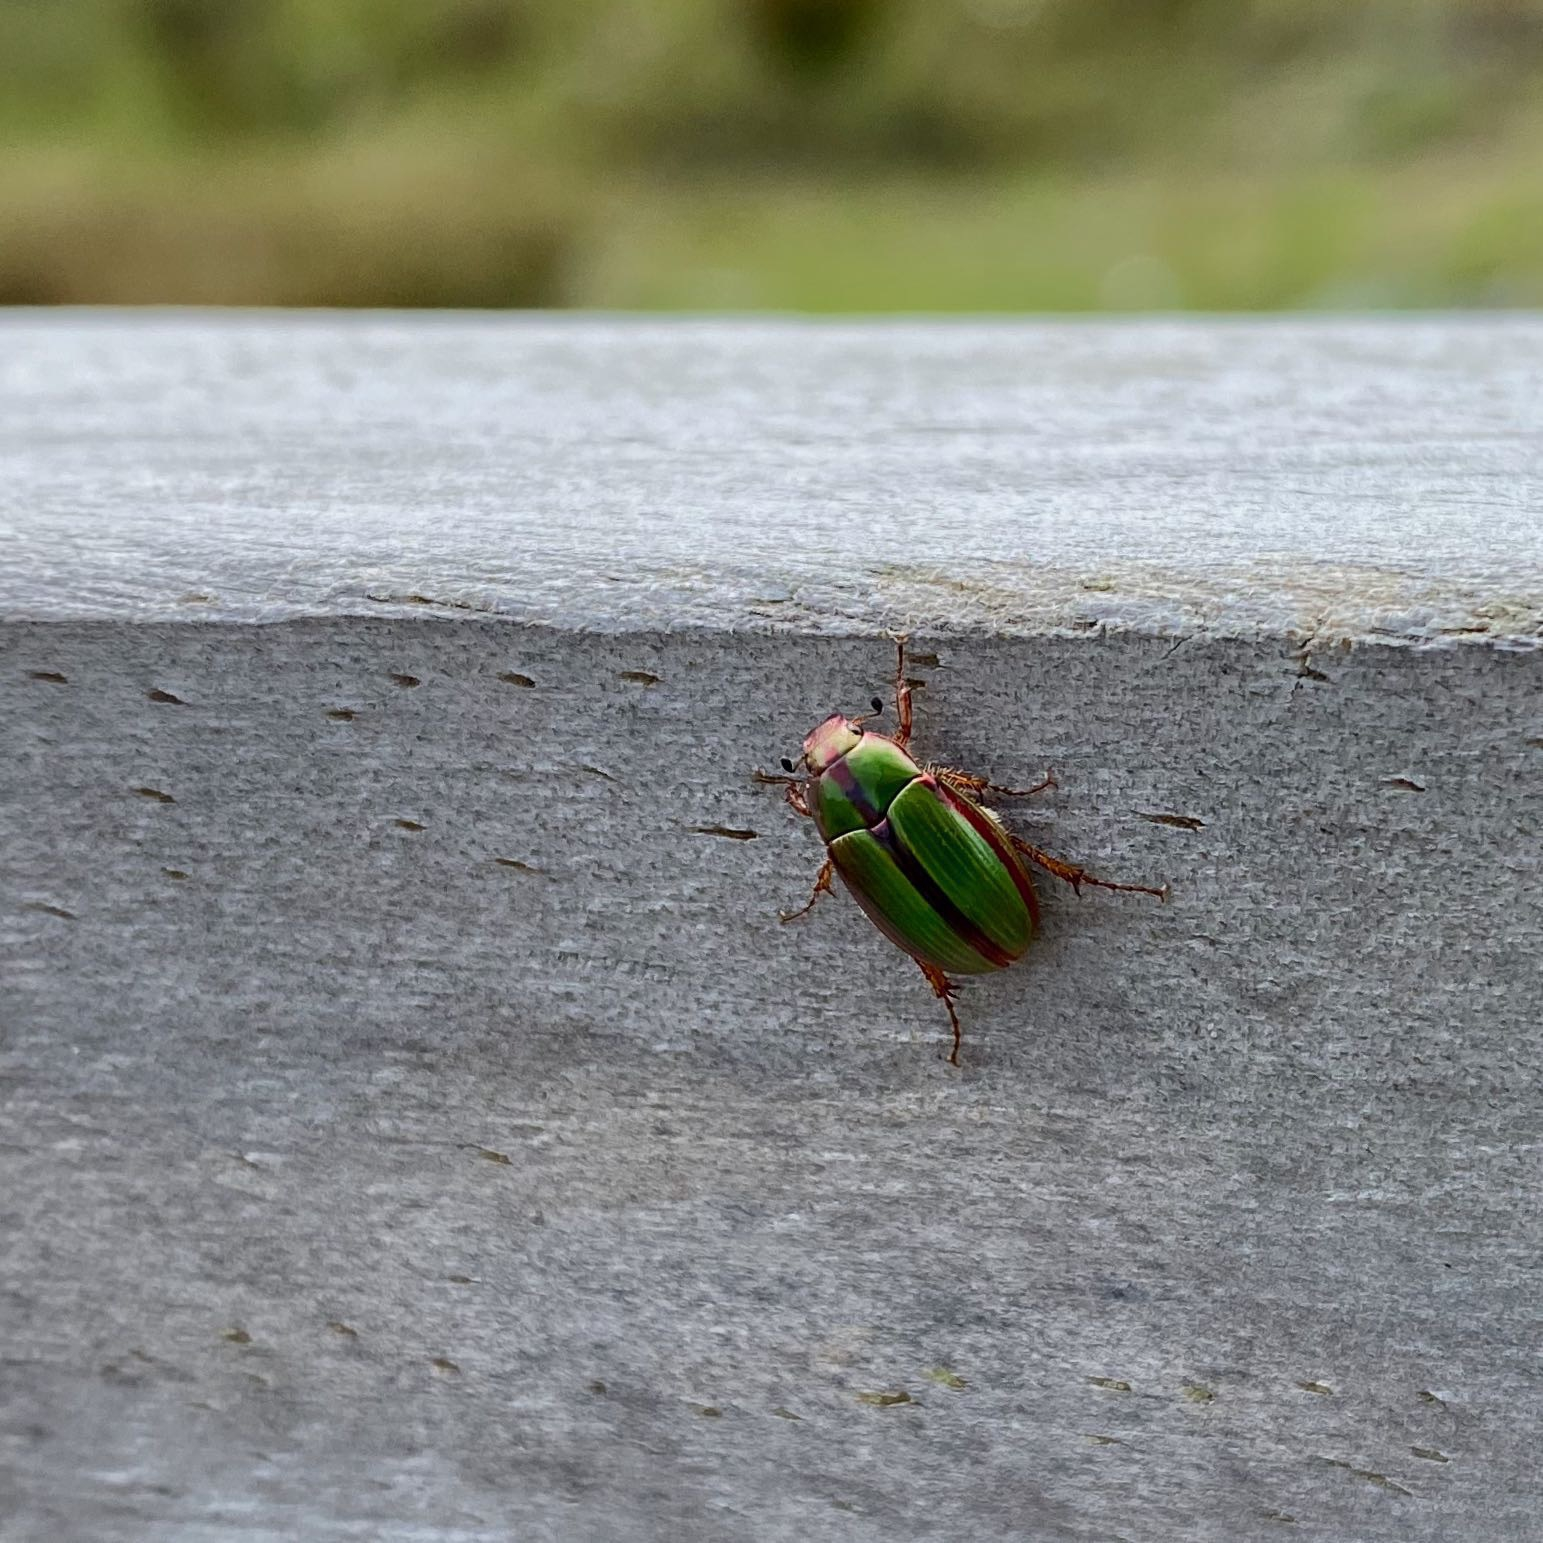 Bright green beetle on a wooden railing.